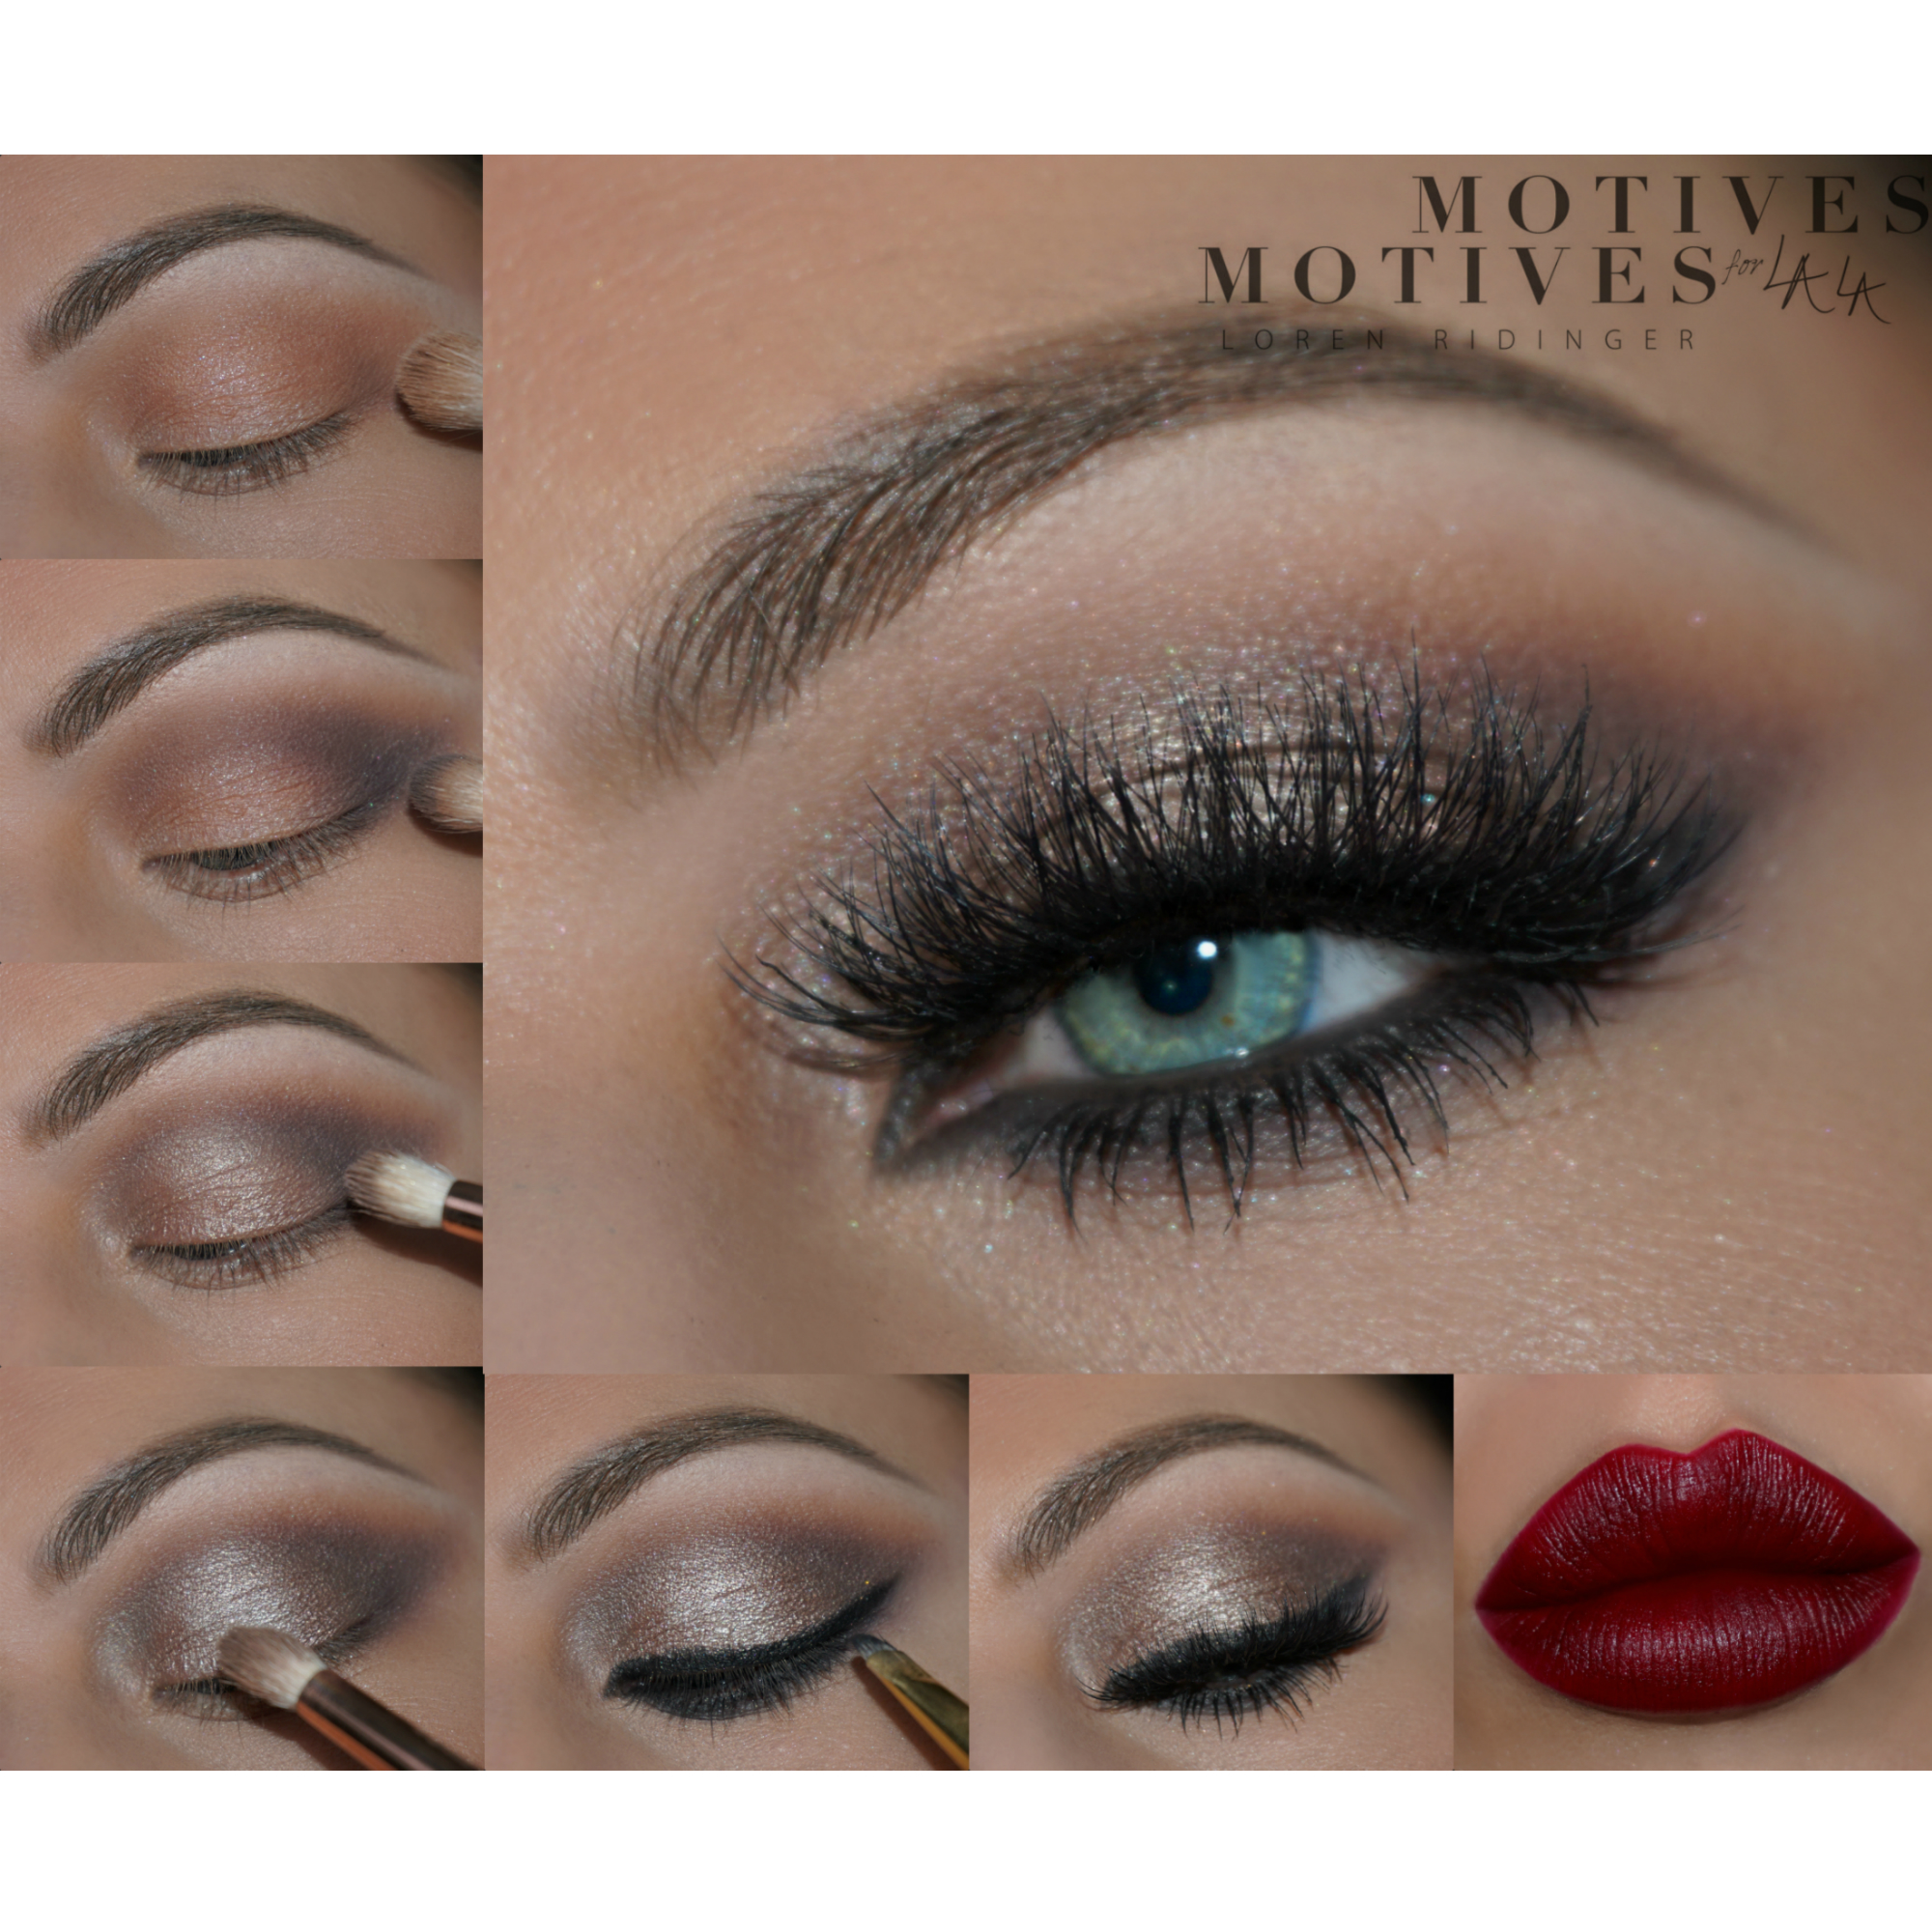 510adc5a8 4 Makeup Tutorials to Pin   Try ASAP with Motives® - Loren s World